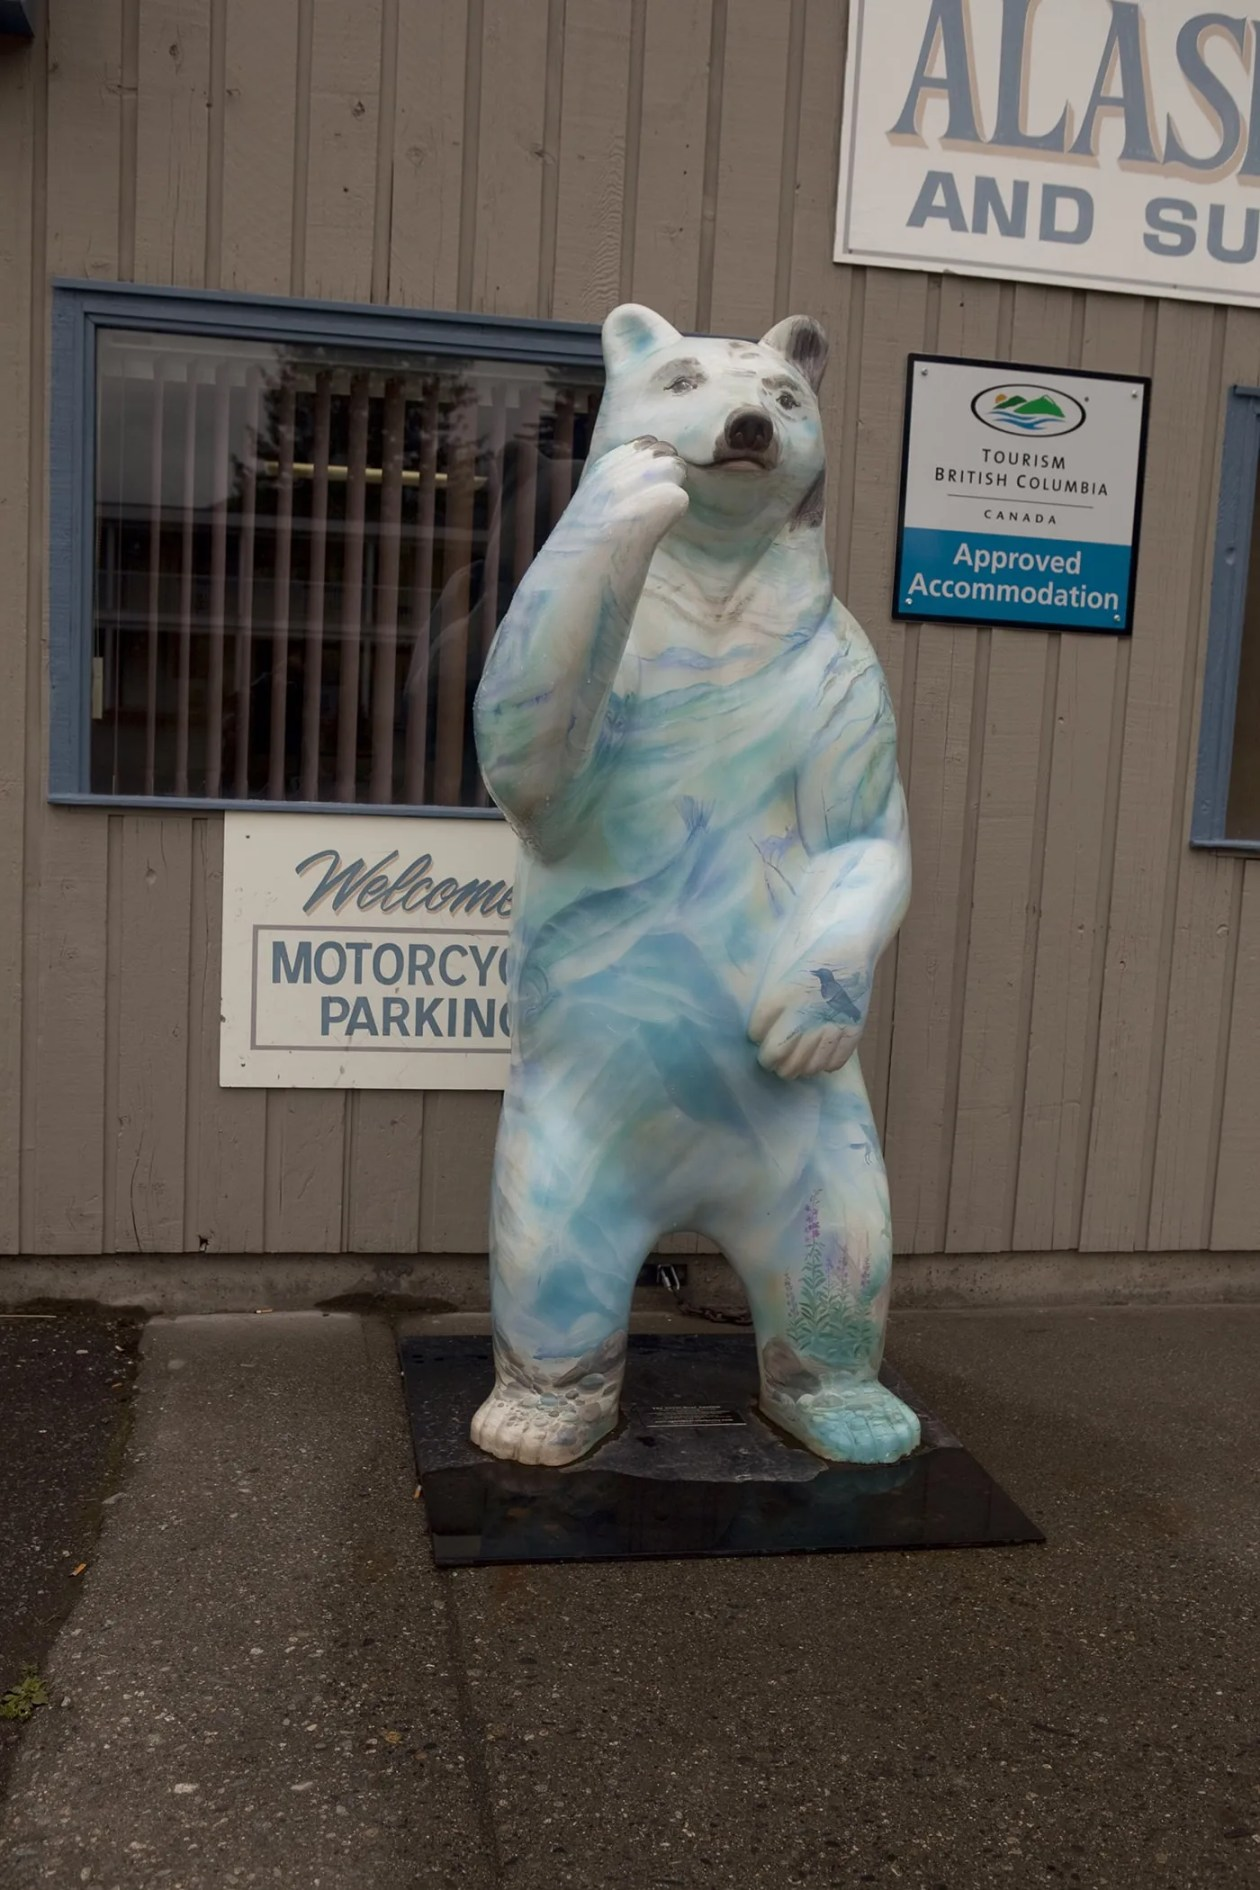 Painted polar bear in front of King Edward's Lounge in Stewart, British Columbia, Canada.